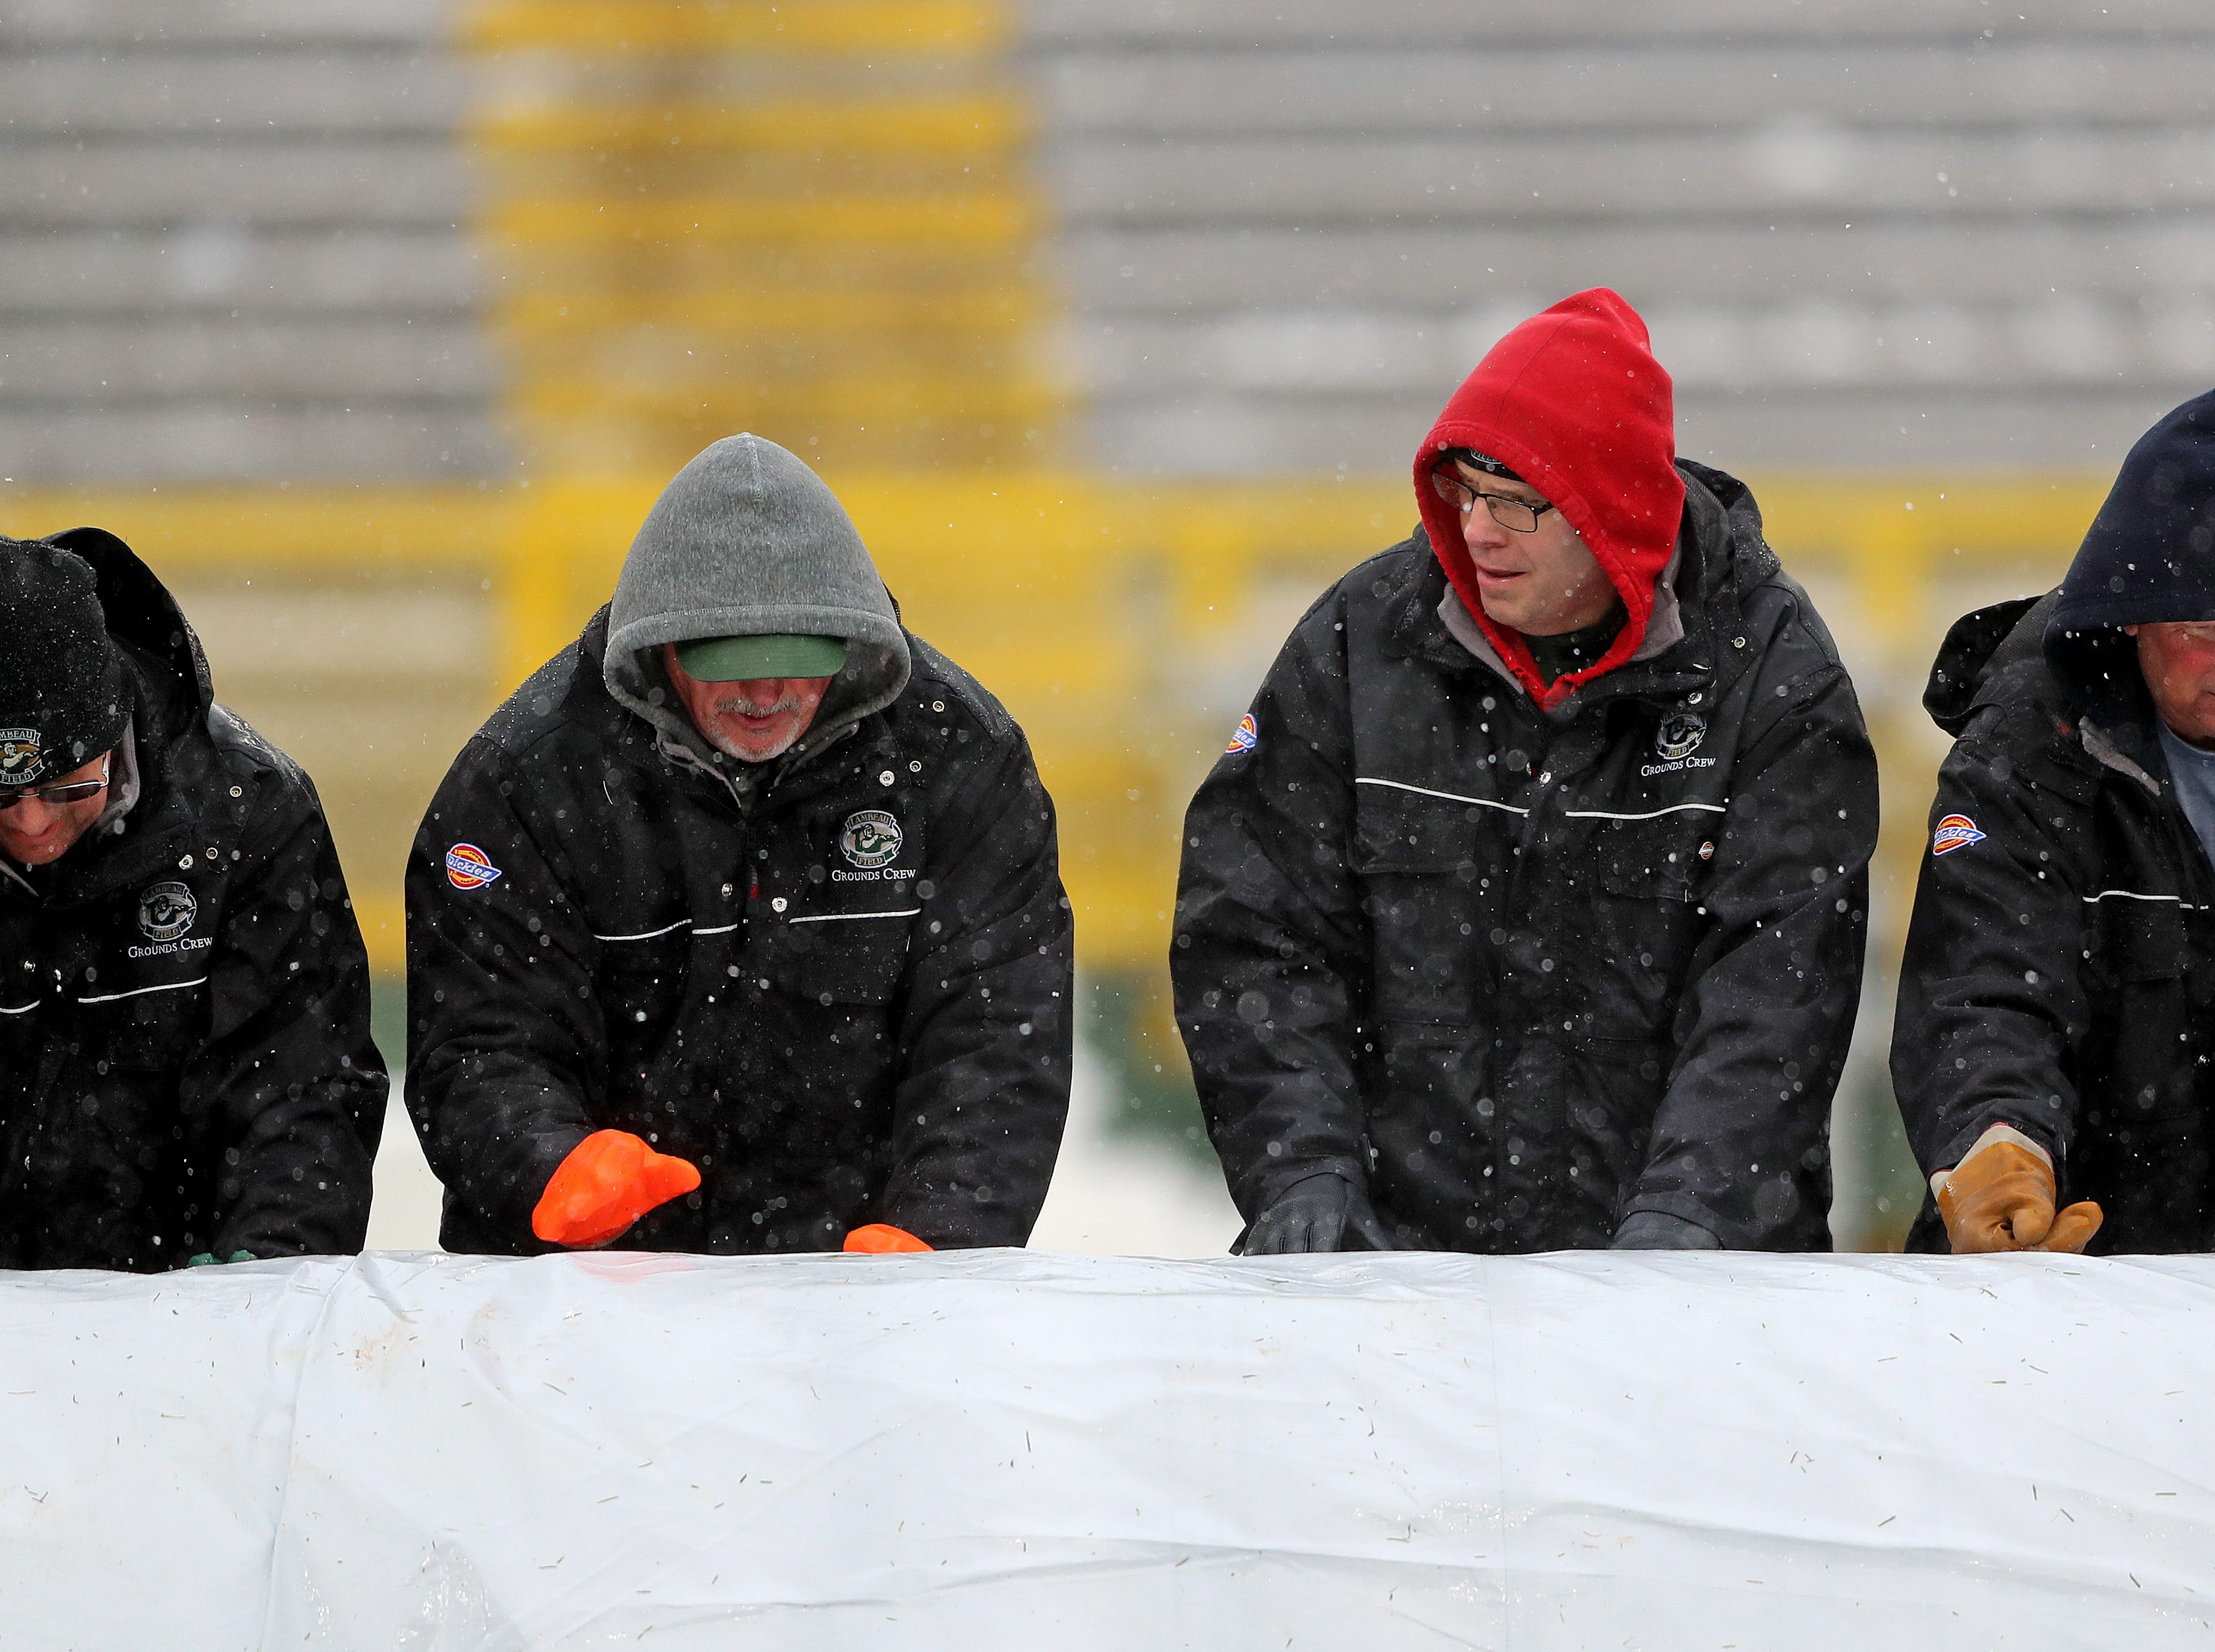 The Lambeau Field stadium crew roll the wet tarp off the grassy surface before the game against the Arizona Cardinals Sunday, December 2, 2018 at Lambeau Field in Green Bay, Wis.Jim Matthews/USA TODAY NETWORK-Wis